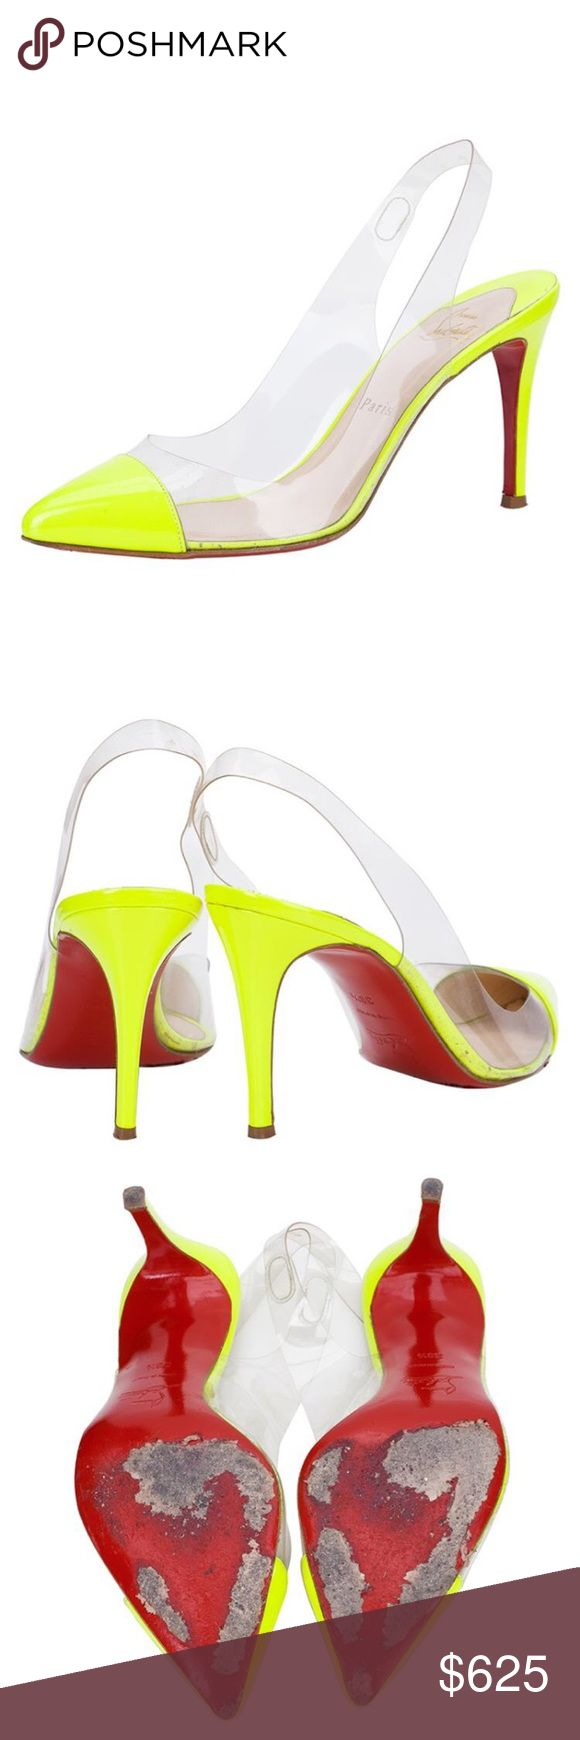 Neon Yellow Authentic Christian Louboutin Heels Flaws shown in picture. Good condition. 100% Authentic Christian Louboutin Shoes Heels